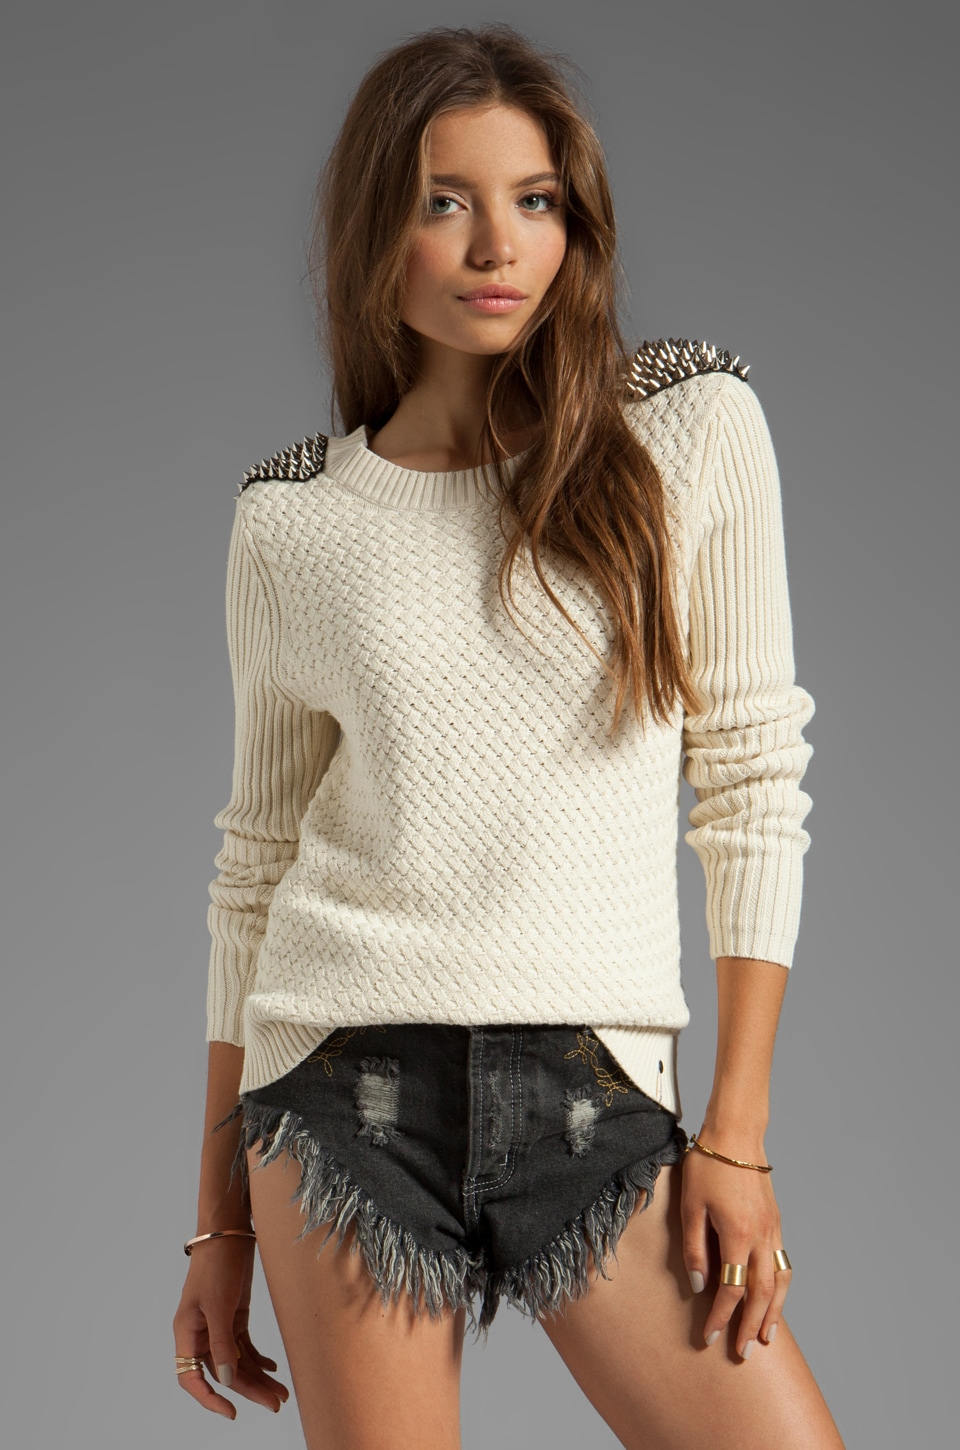 One Teaspoon Soul Captive Studded Knit in Cream